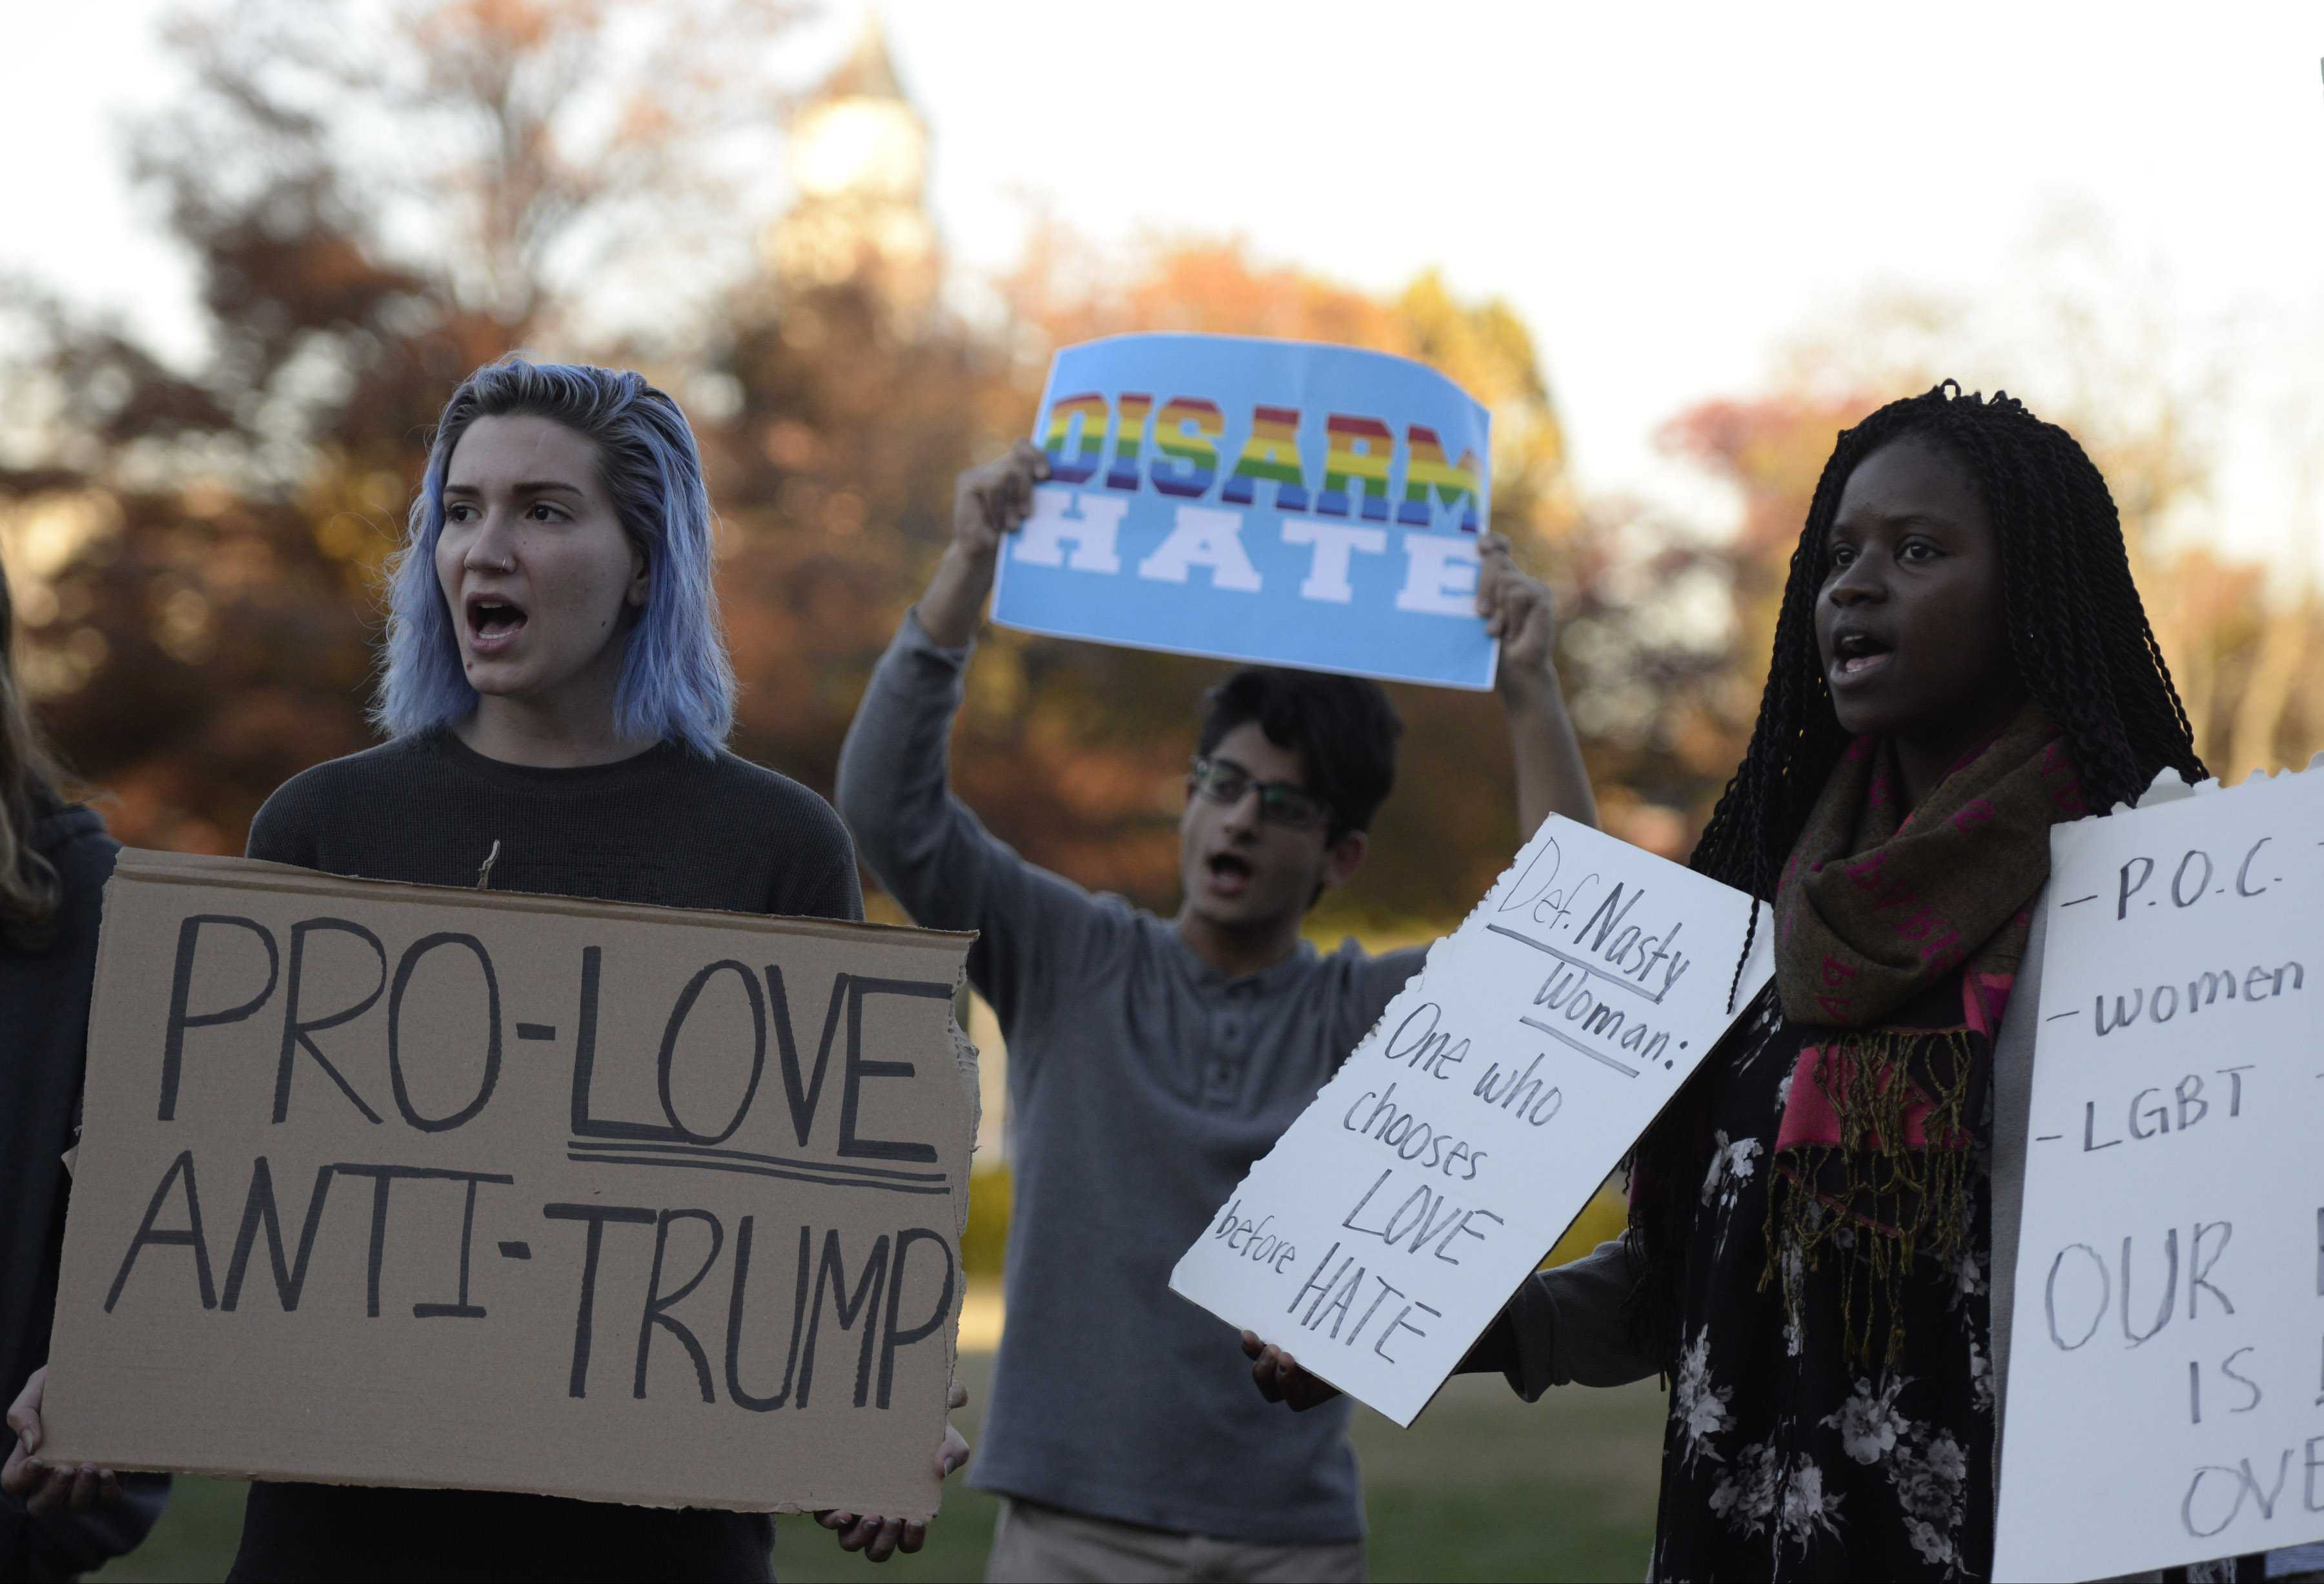 Demonstrators gather Wednesday, Nov. 16, 2016, in front of Morris Library to protest a host of issues surrounding the election of Donald Trump as president. (Bill Lukitsch | @lukitsbill)